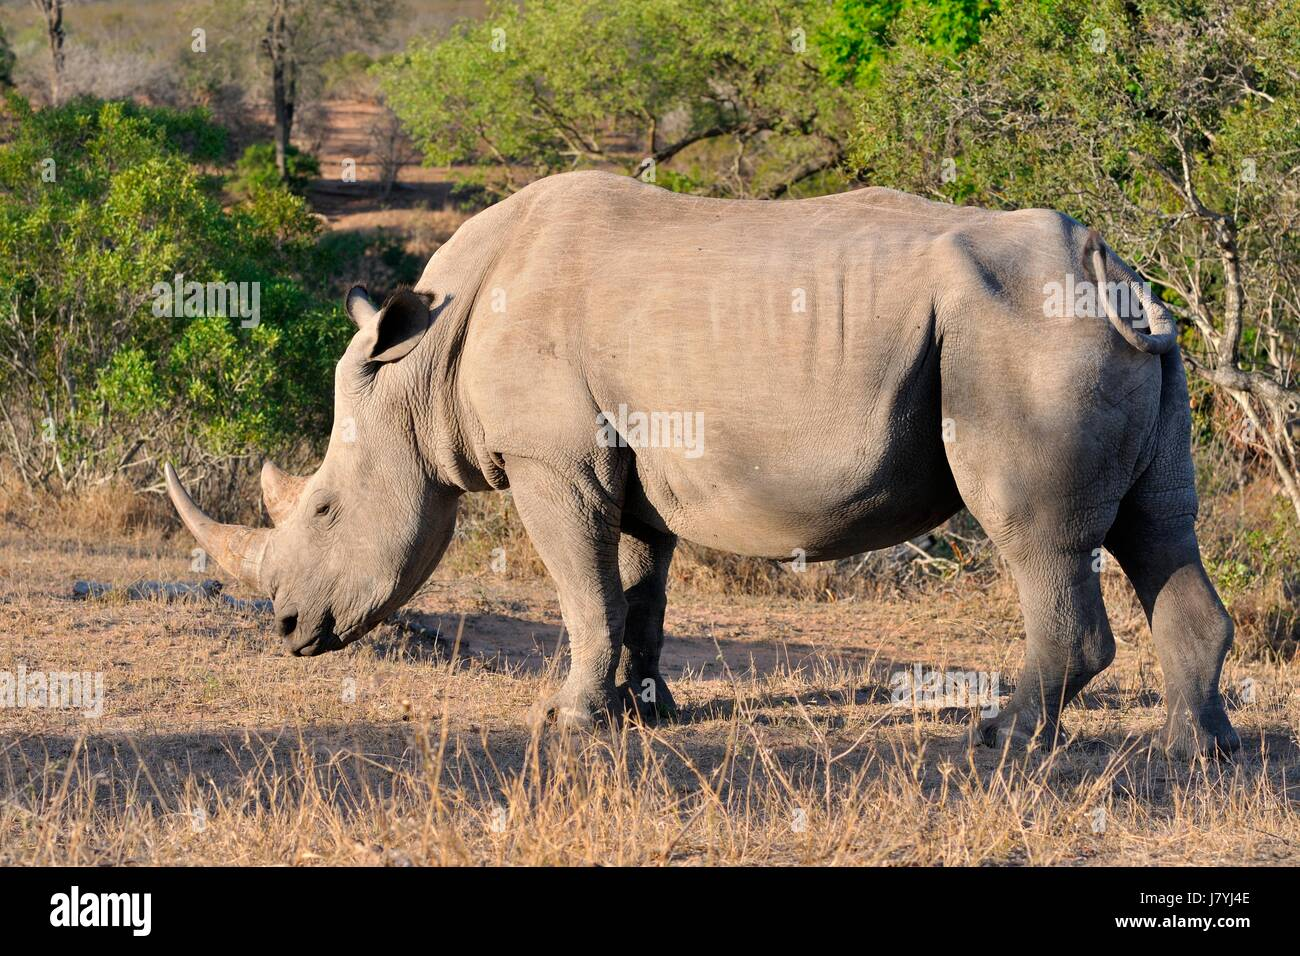 White rhinoceros or Square-lipped rhinoceros (Ceratotherium simum), adult male standing, motionless, Kruger National - Stock Image